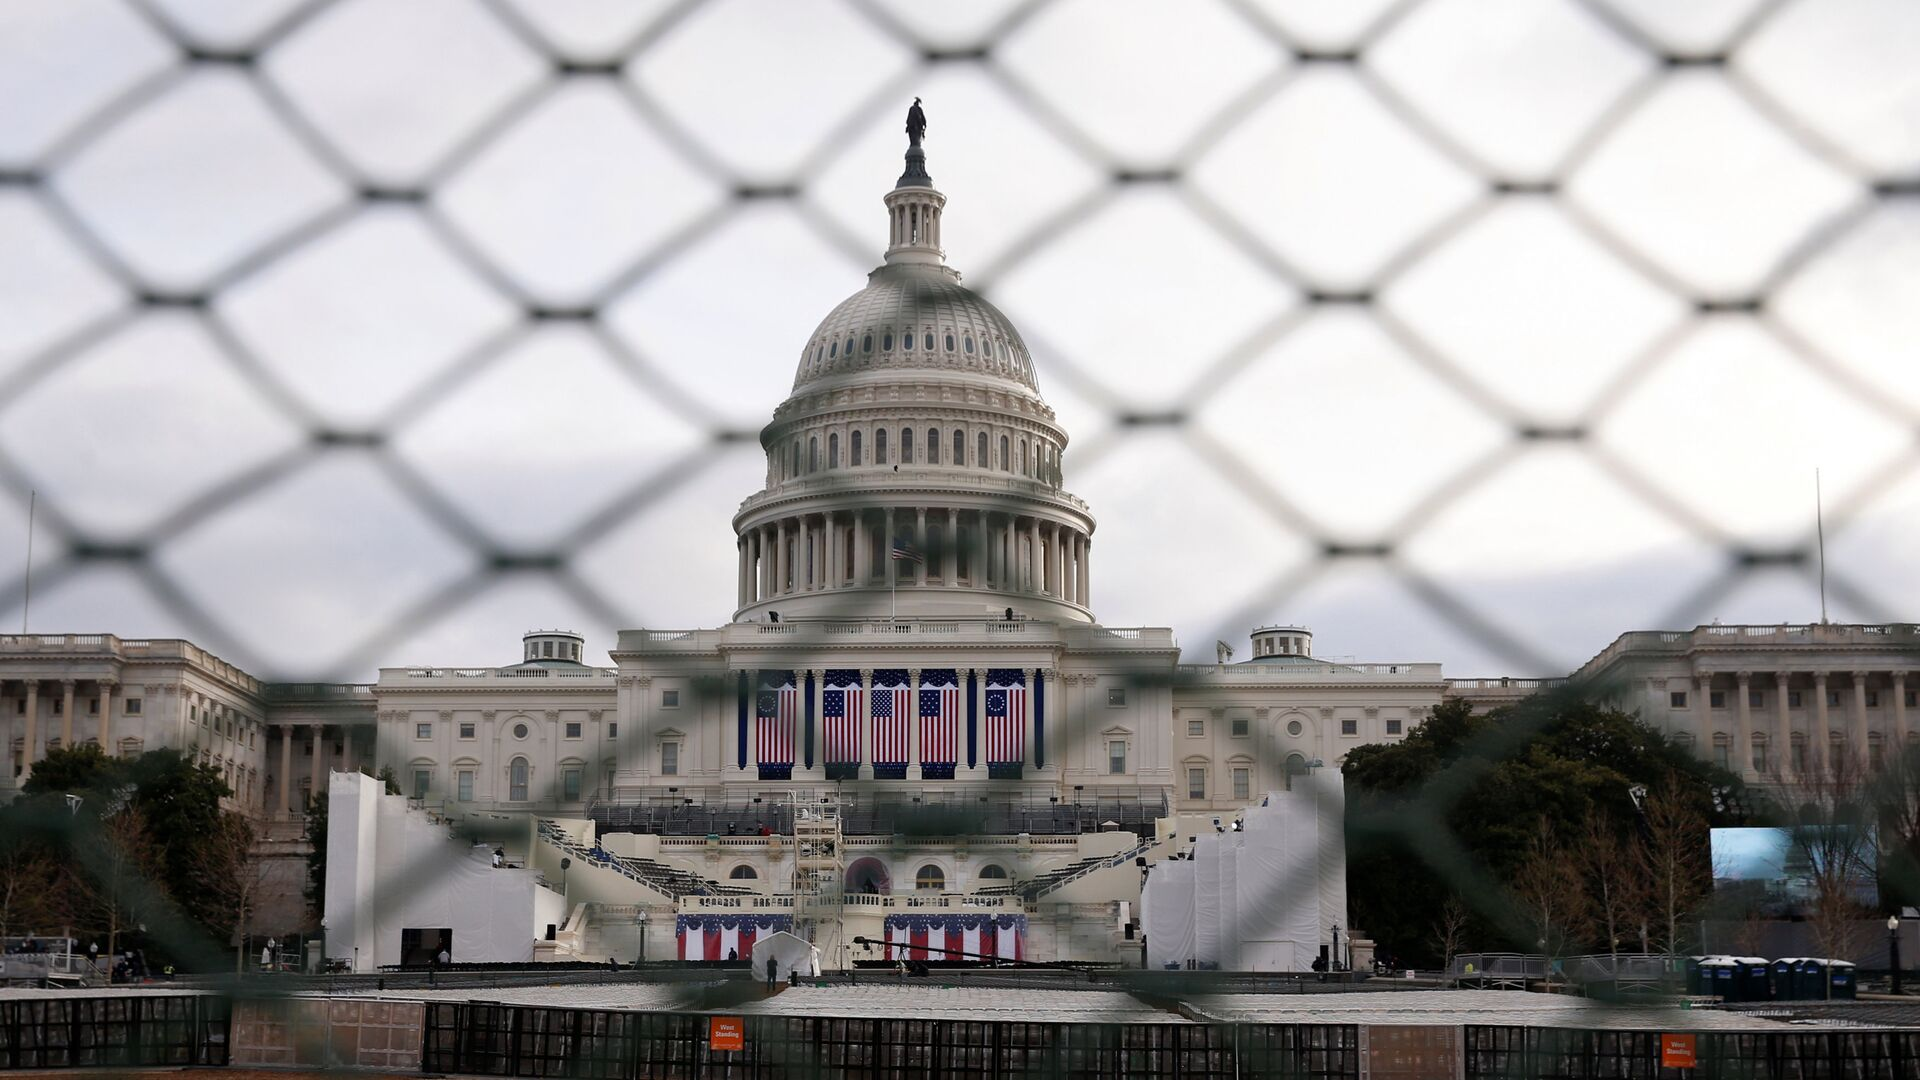 The U.S. Capitol building is seen behind a security fence in Washington ahead of the 2017 Presidential Inauguation. - Sputnik International, 1920, 12.09.2021